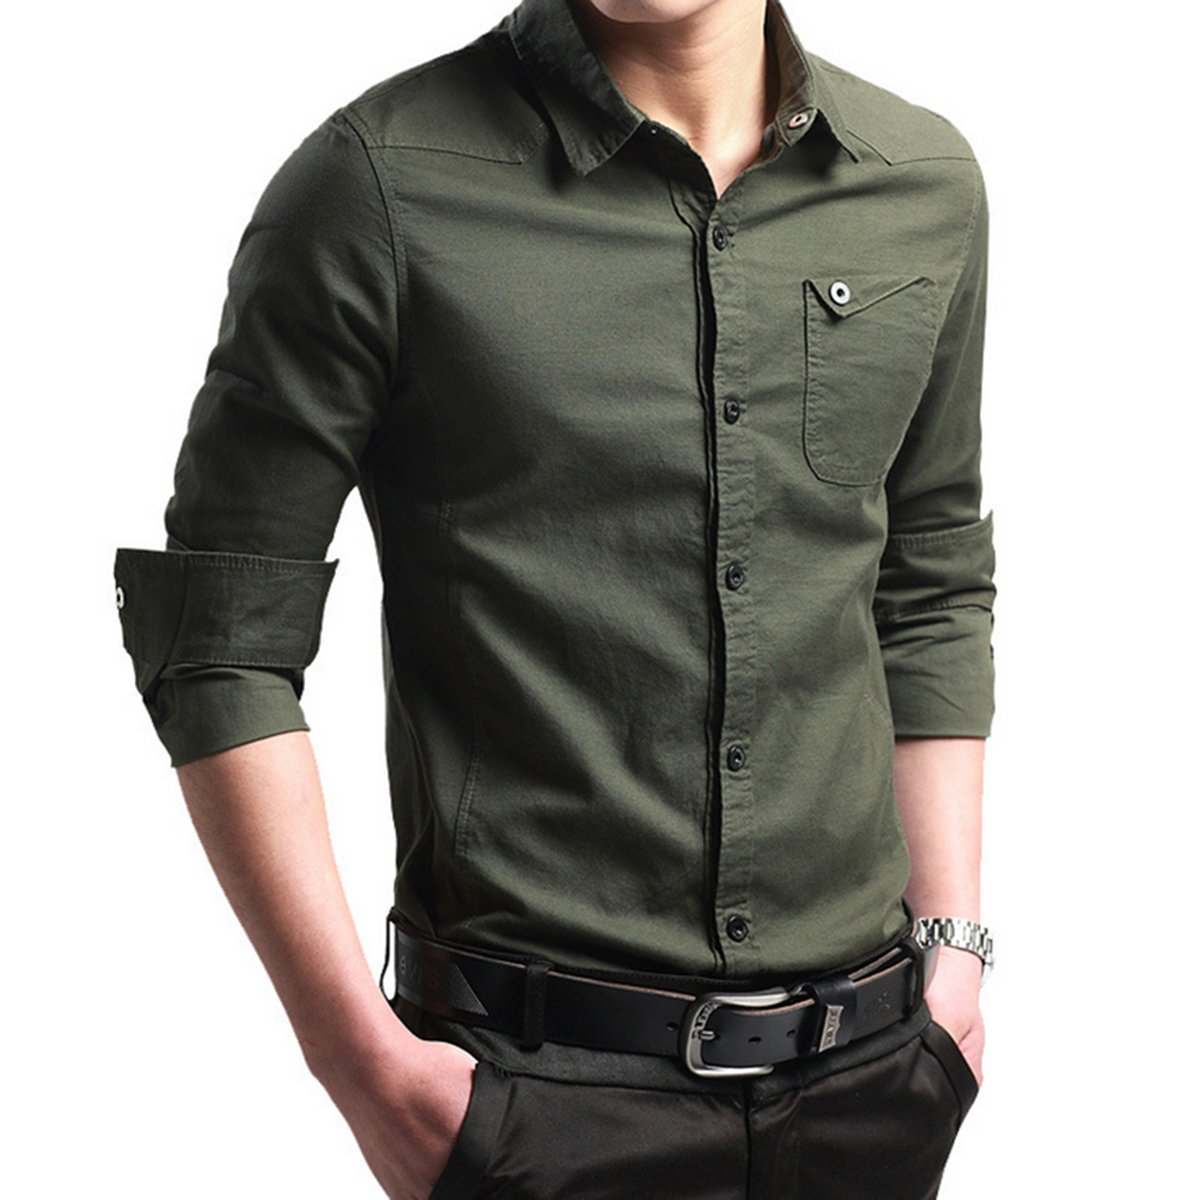 LOCALMODE Men's Military Slim Fit Dress Shirt Casual Long Sleeve Button Down Dress Shirts Army Green L